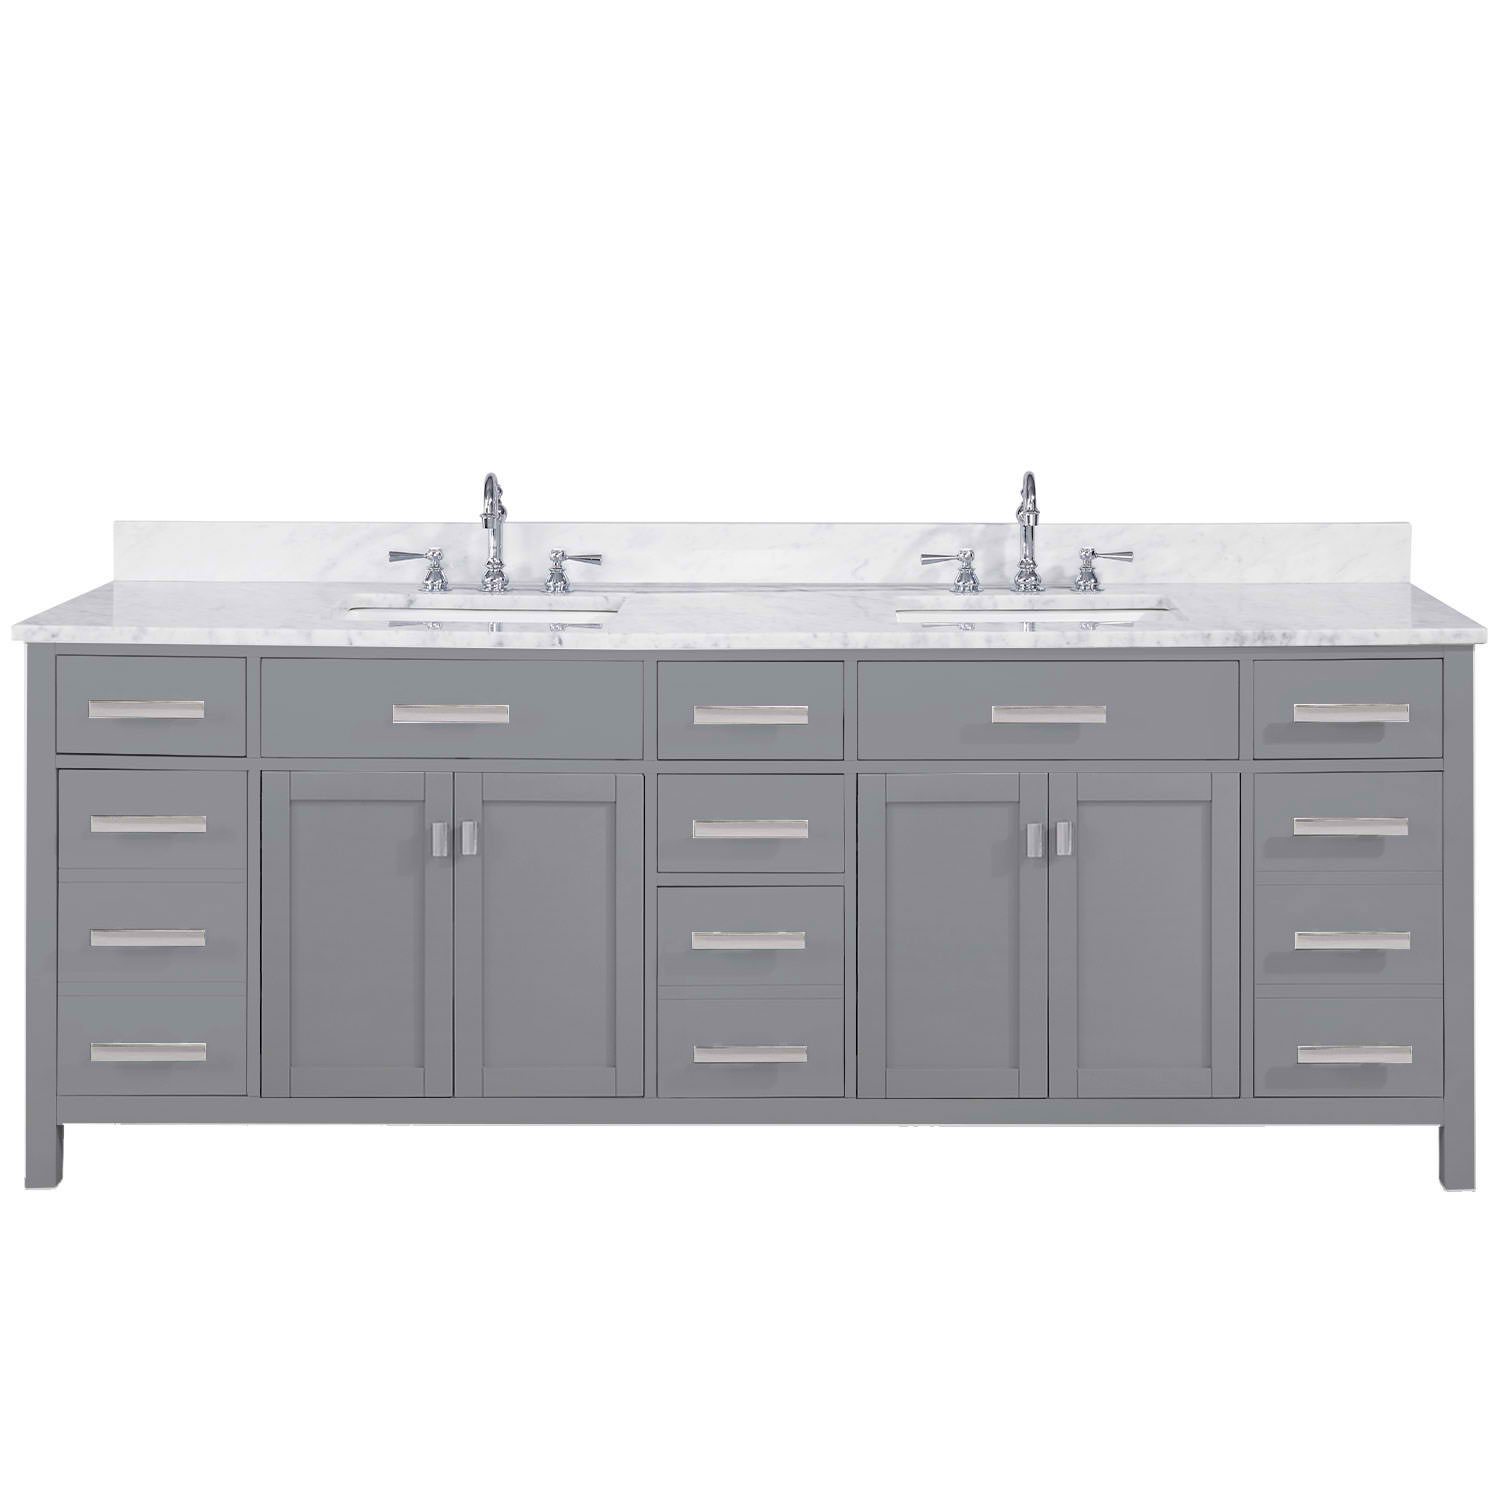 "Modern 84"" Double Sink Vanity with Carrara Marble Counterop in Gray Finish"